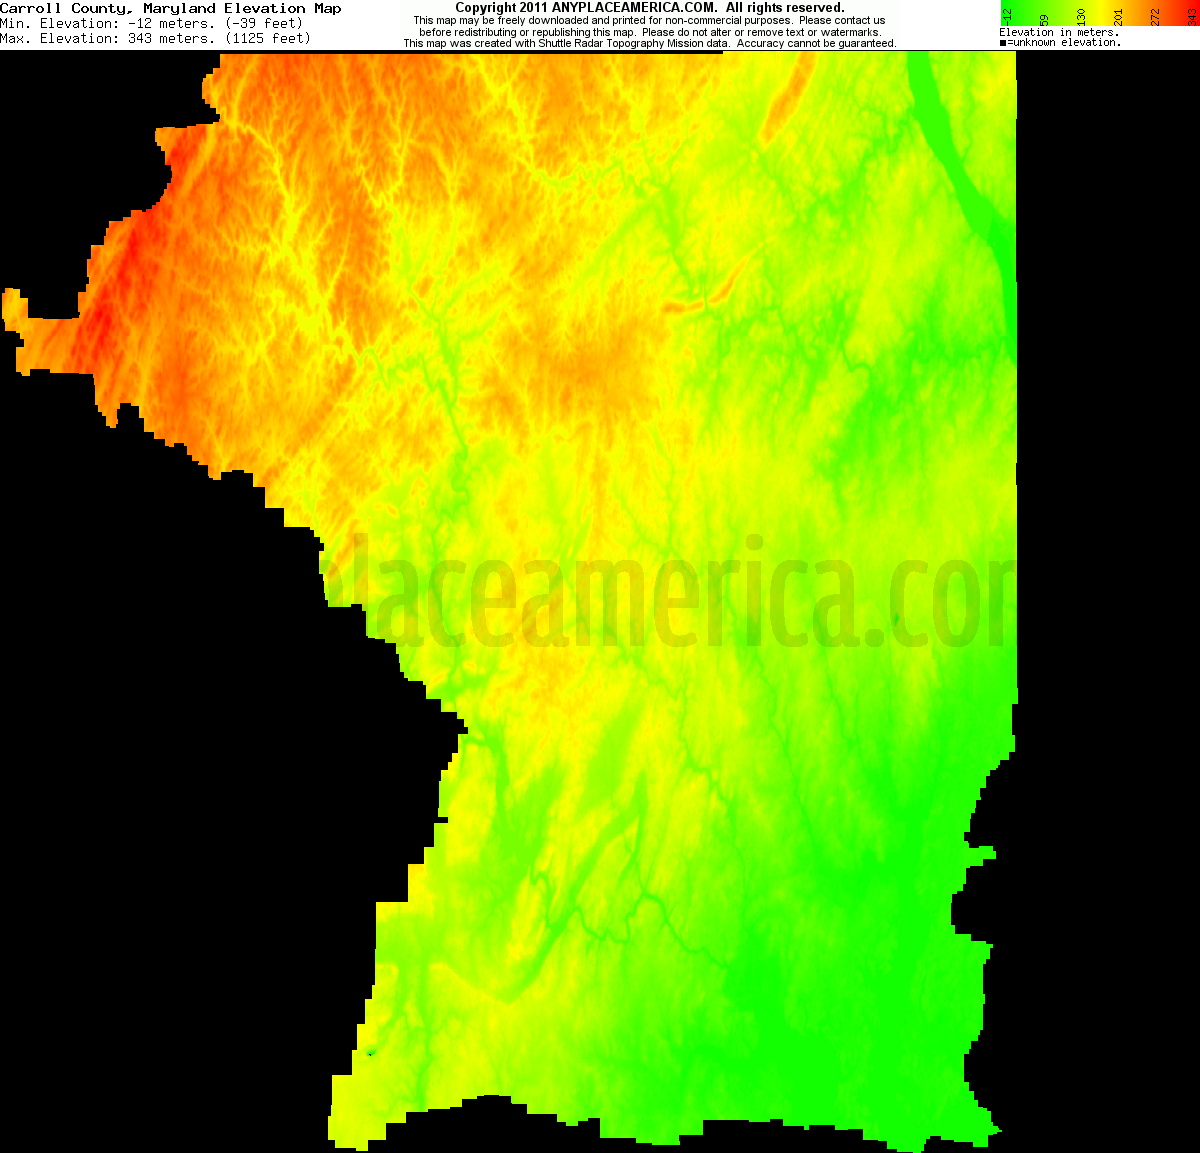 Free Carroll County Maryland Topo Maps Elevations